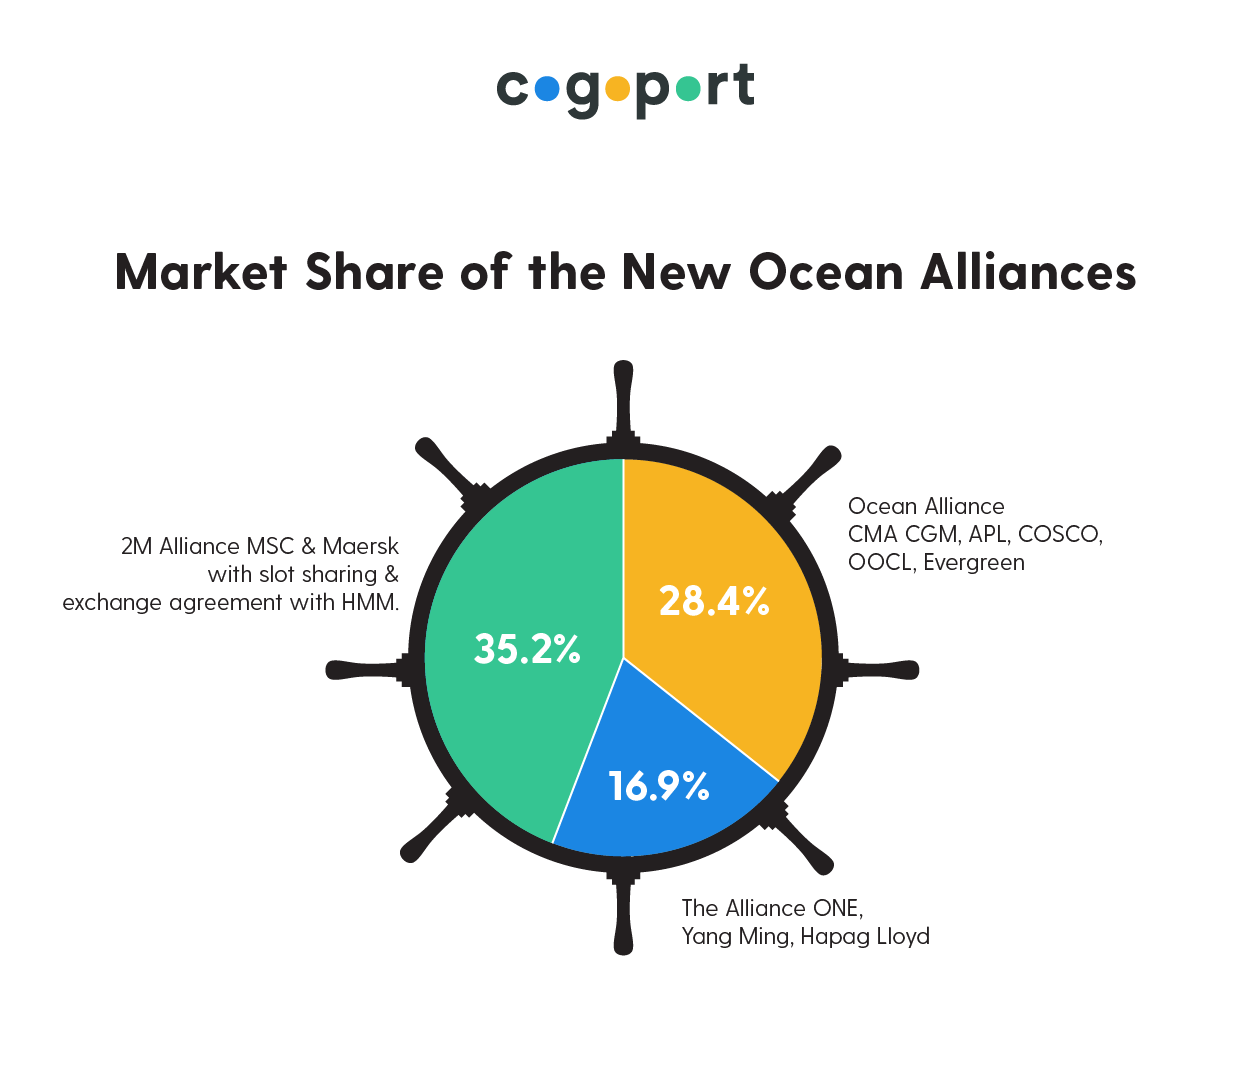 Container Shipping Line's Market Share